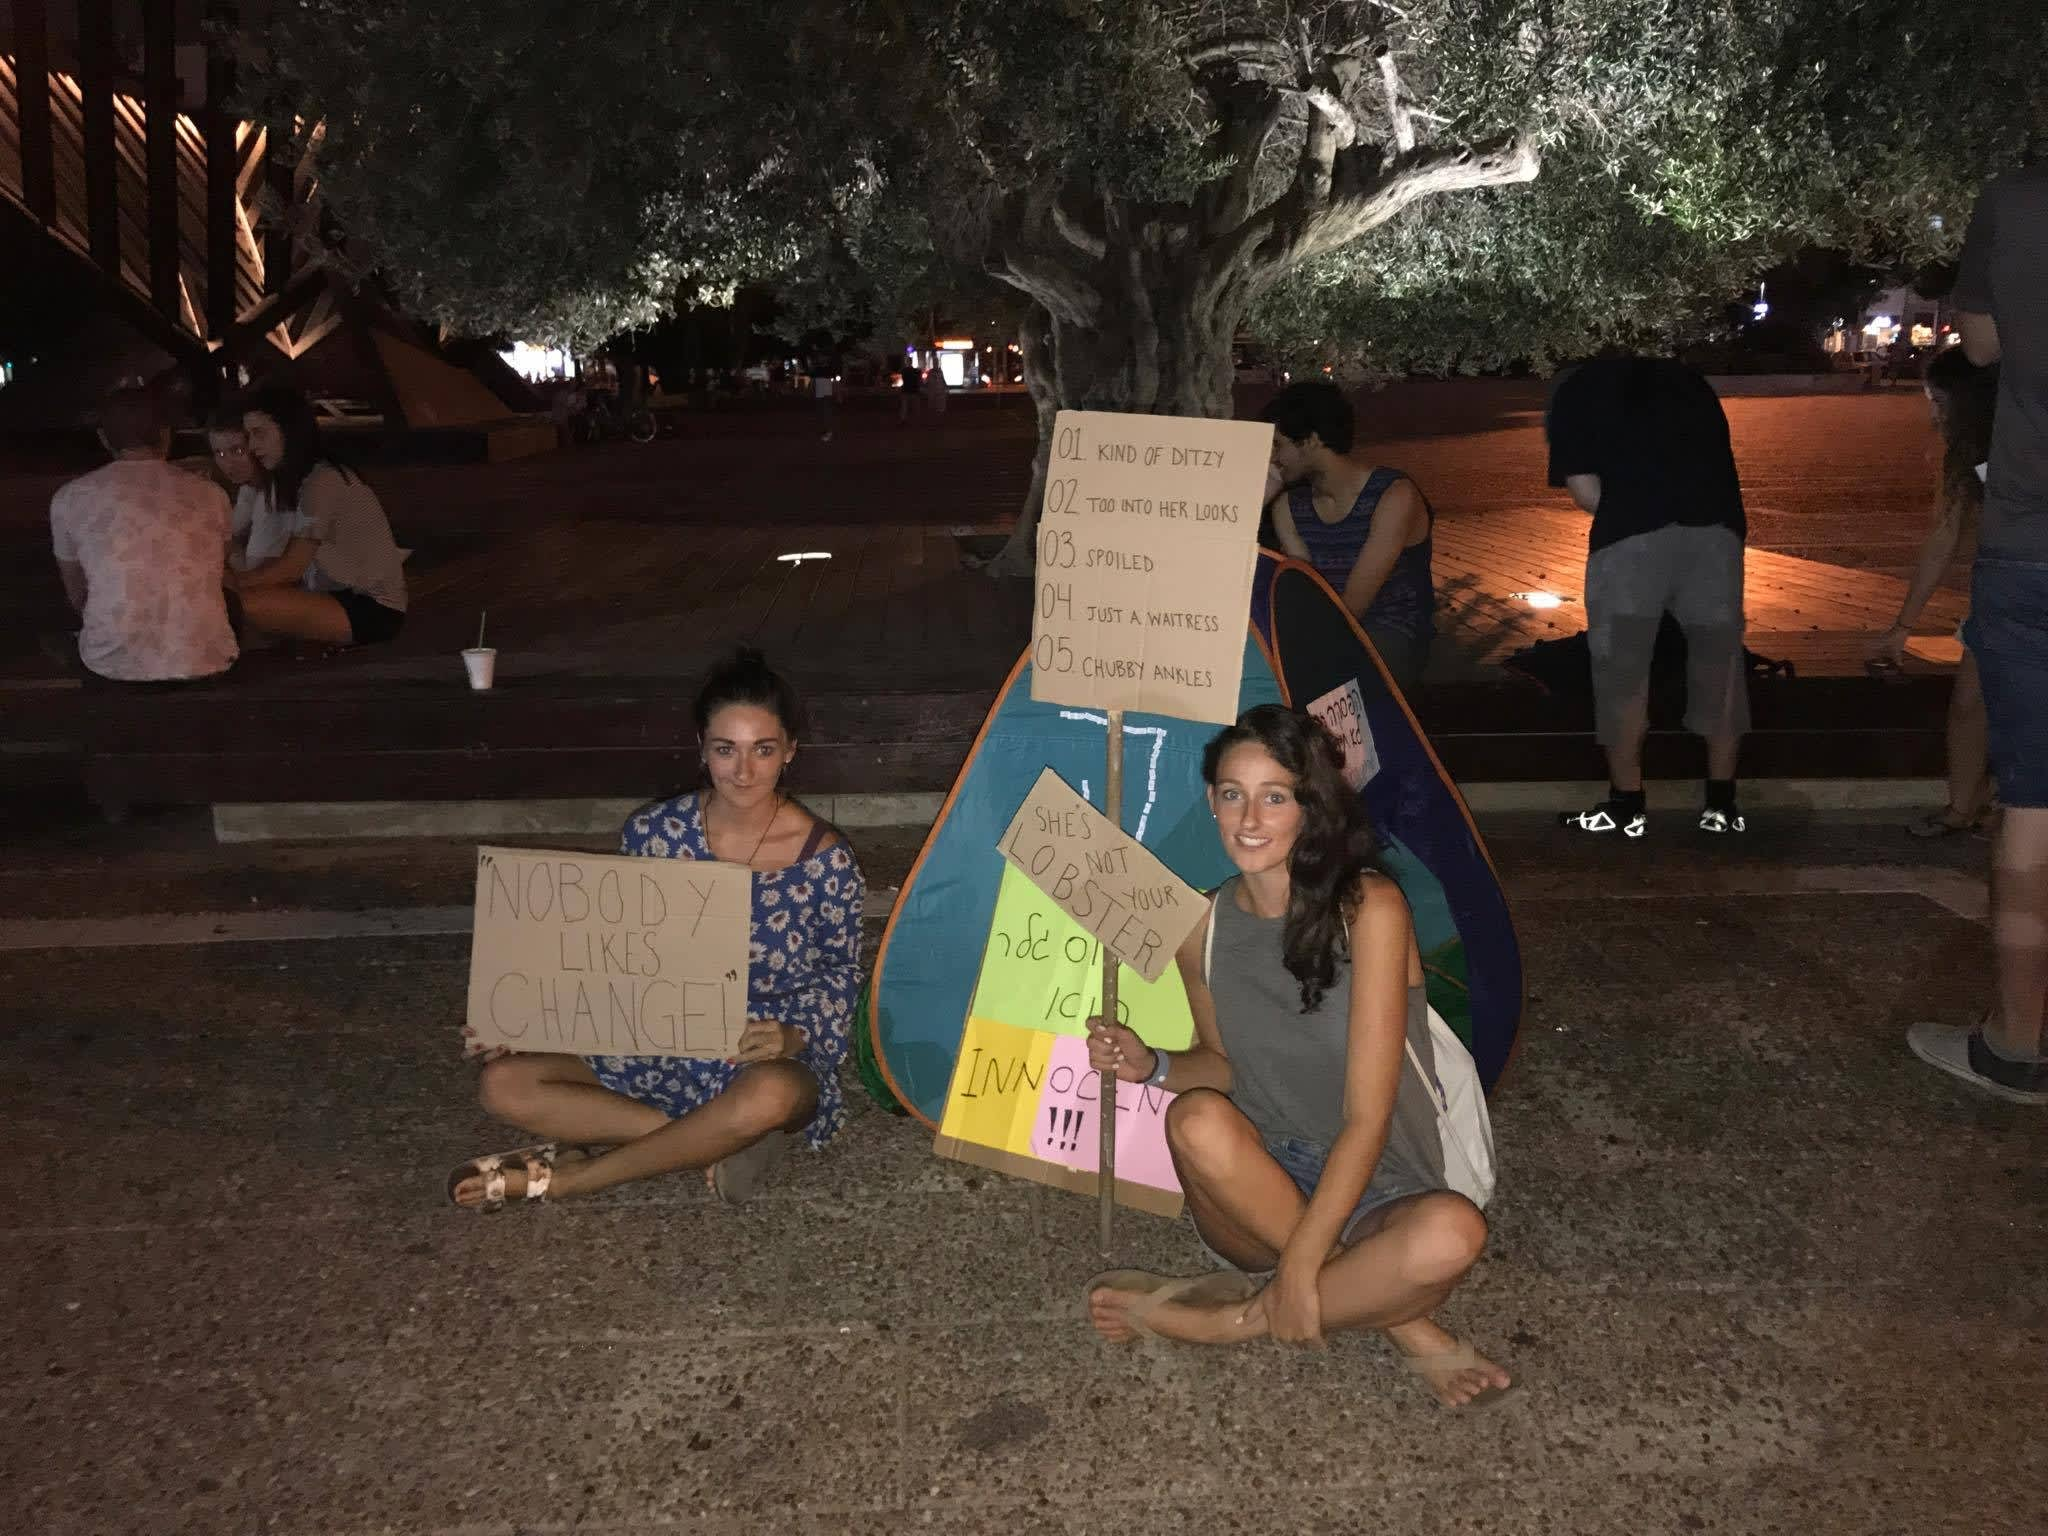 Protesters show support for Ross Geller from Friends in Rabin Square (credit: PAIGE WILSEY)